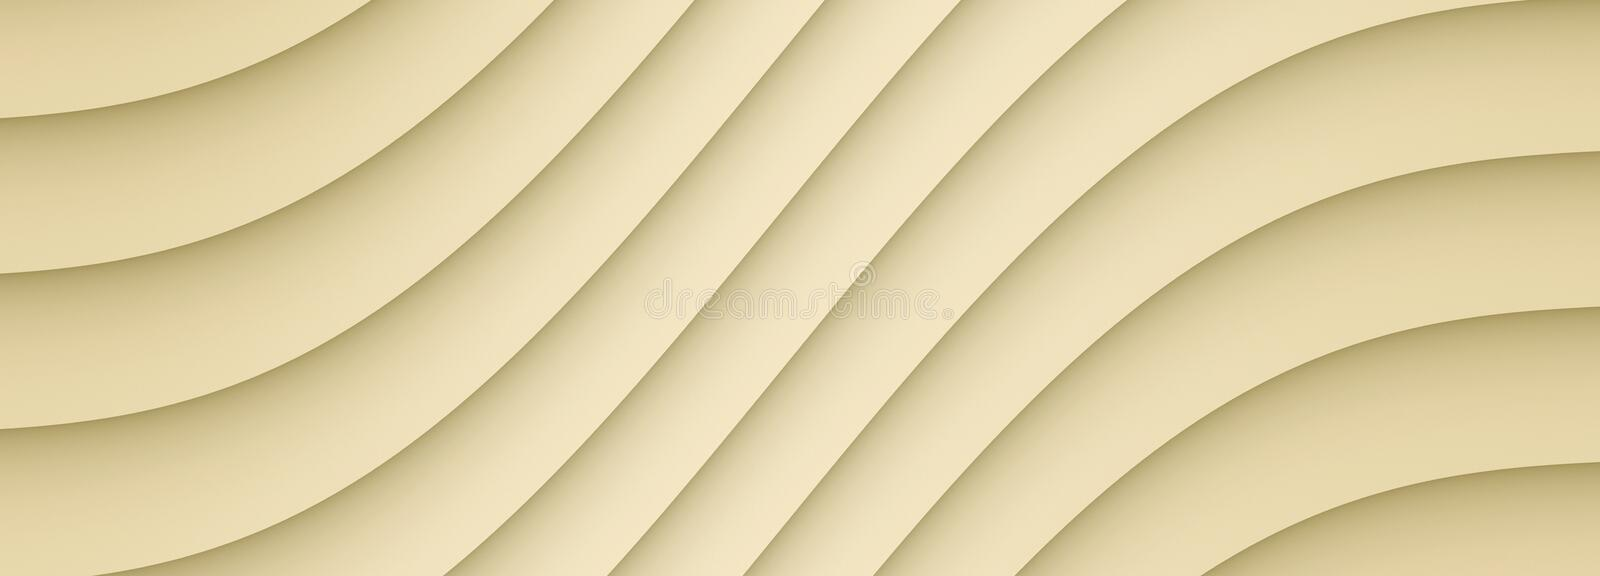 Smooth flowing ivory beige symmetric diagonal curves lines abstract color background. Computer generated abstract color background illustration in a neutral royalty free illustration